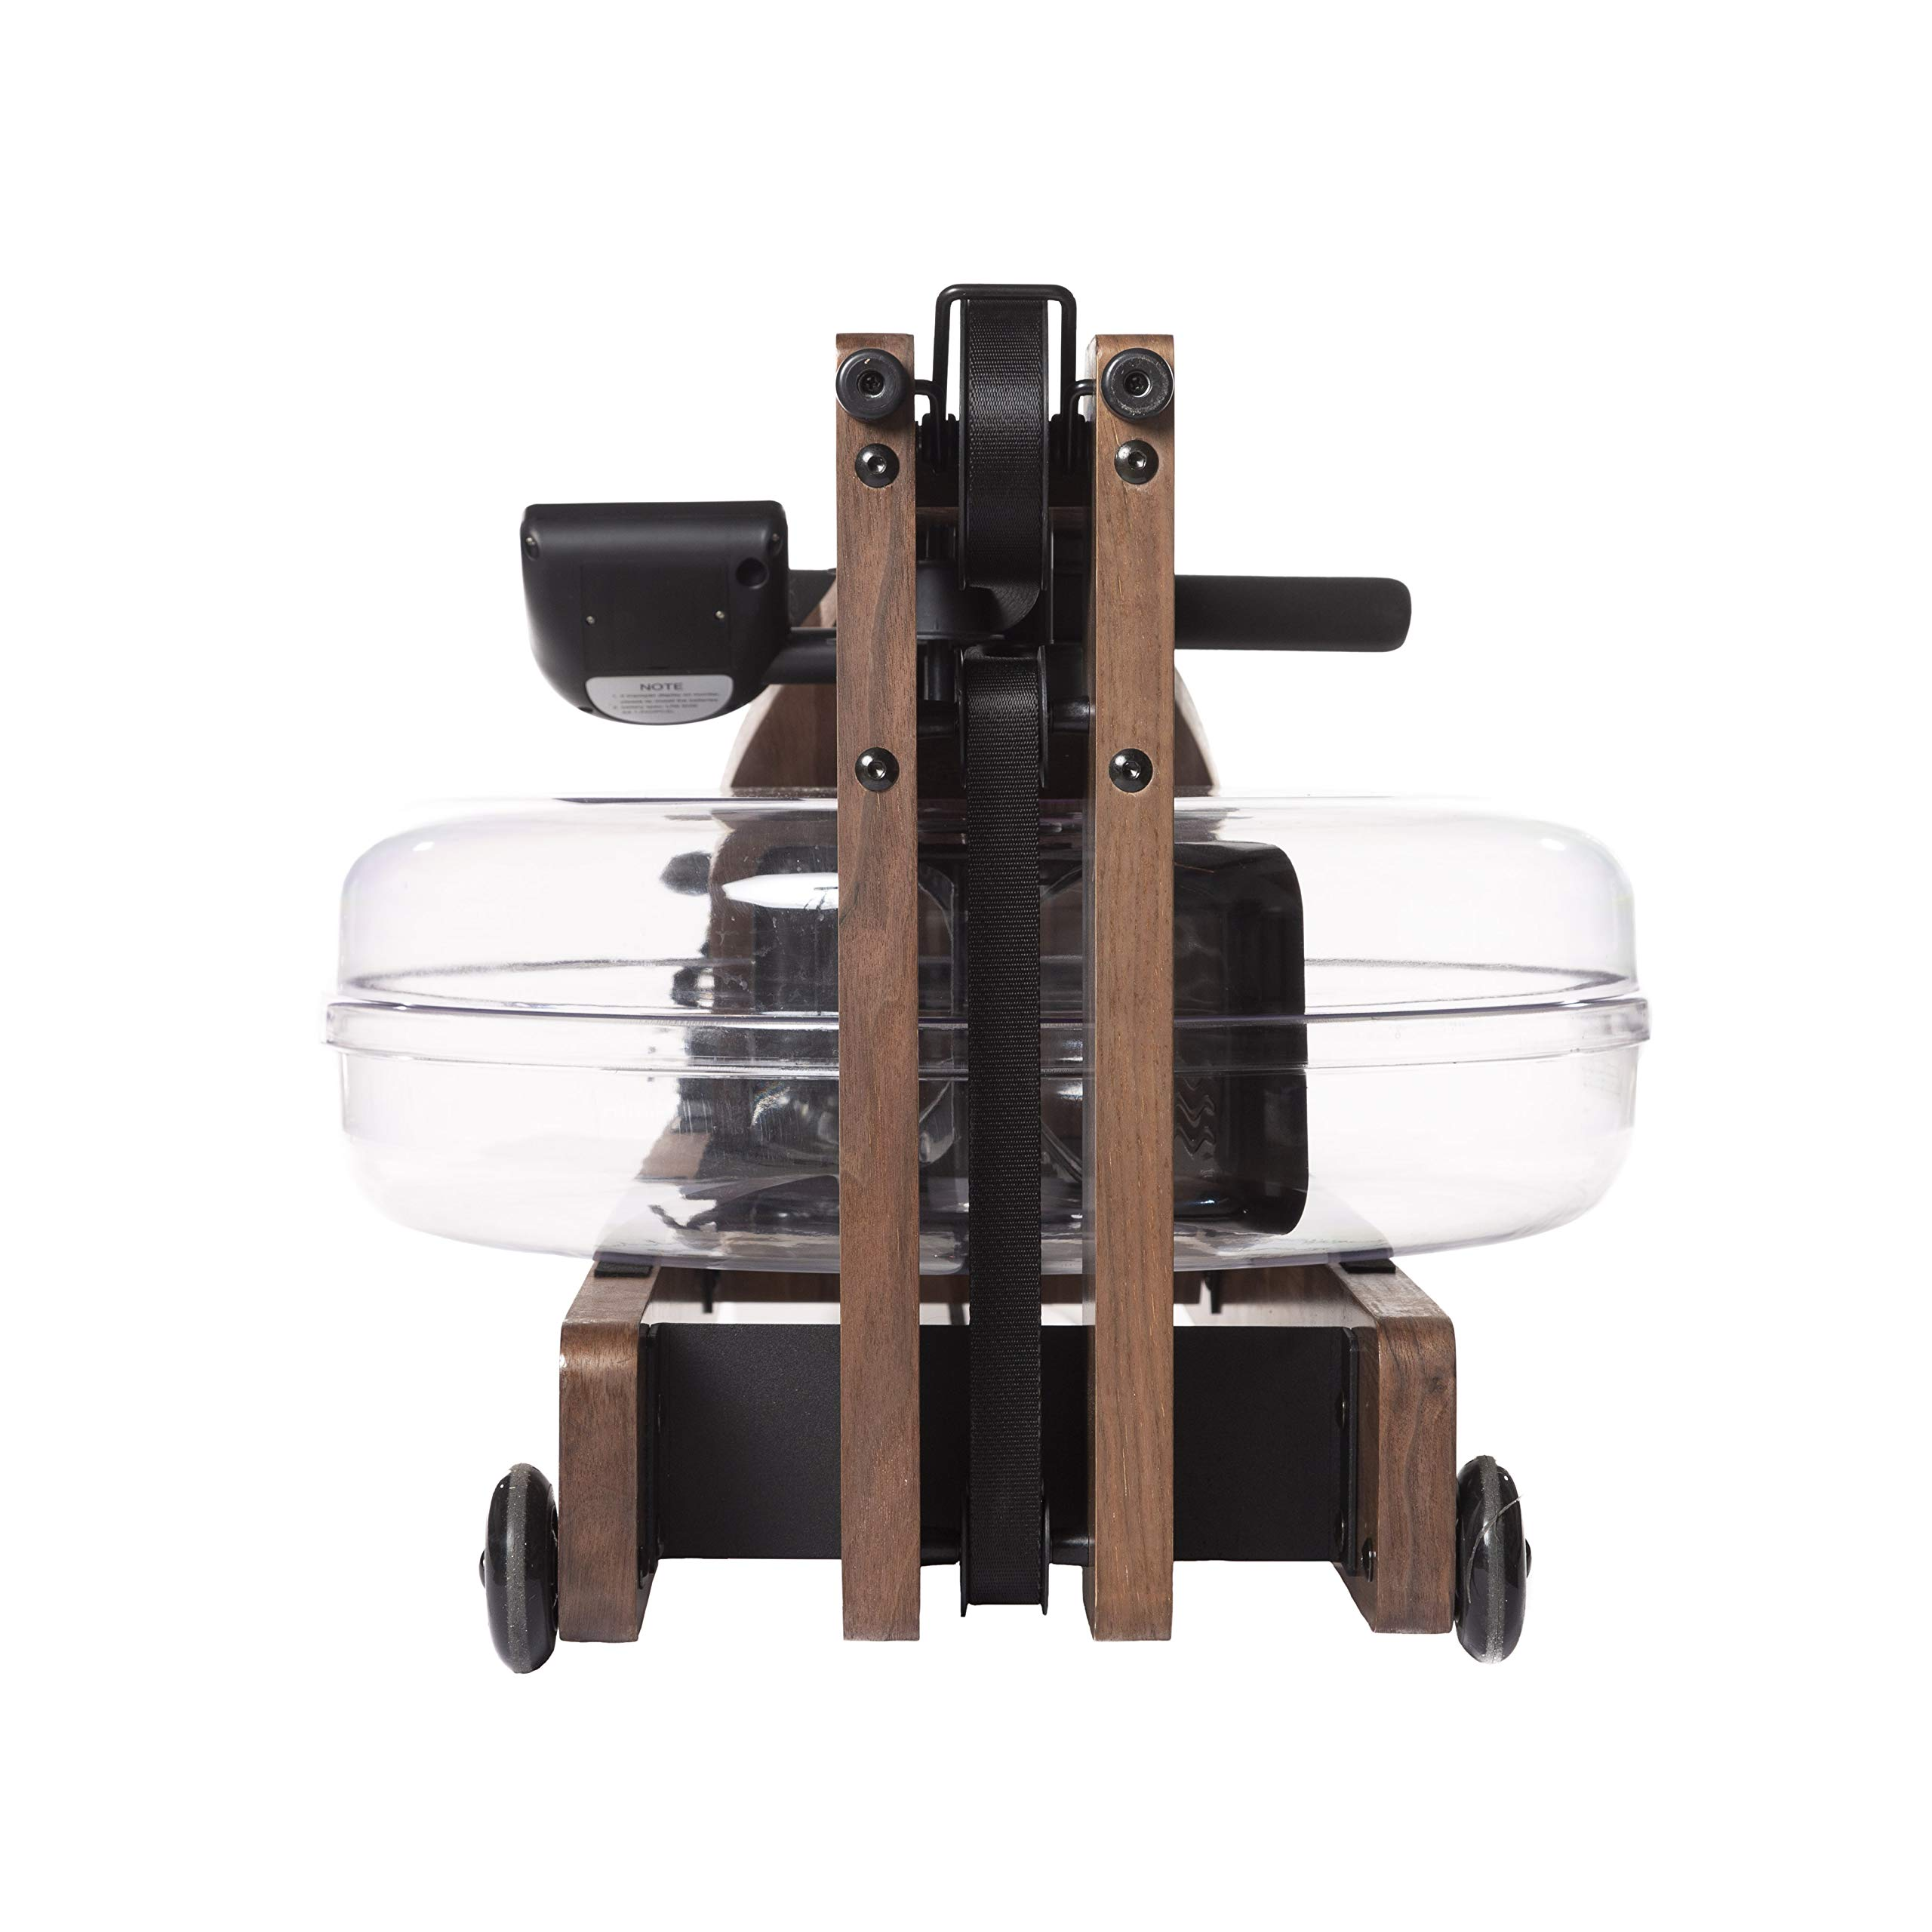 Incline Fit Wood Water Rowing Machine with Monitor, Walnut by Incline Fit (Image #5)